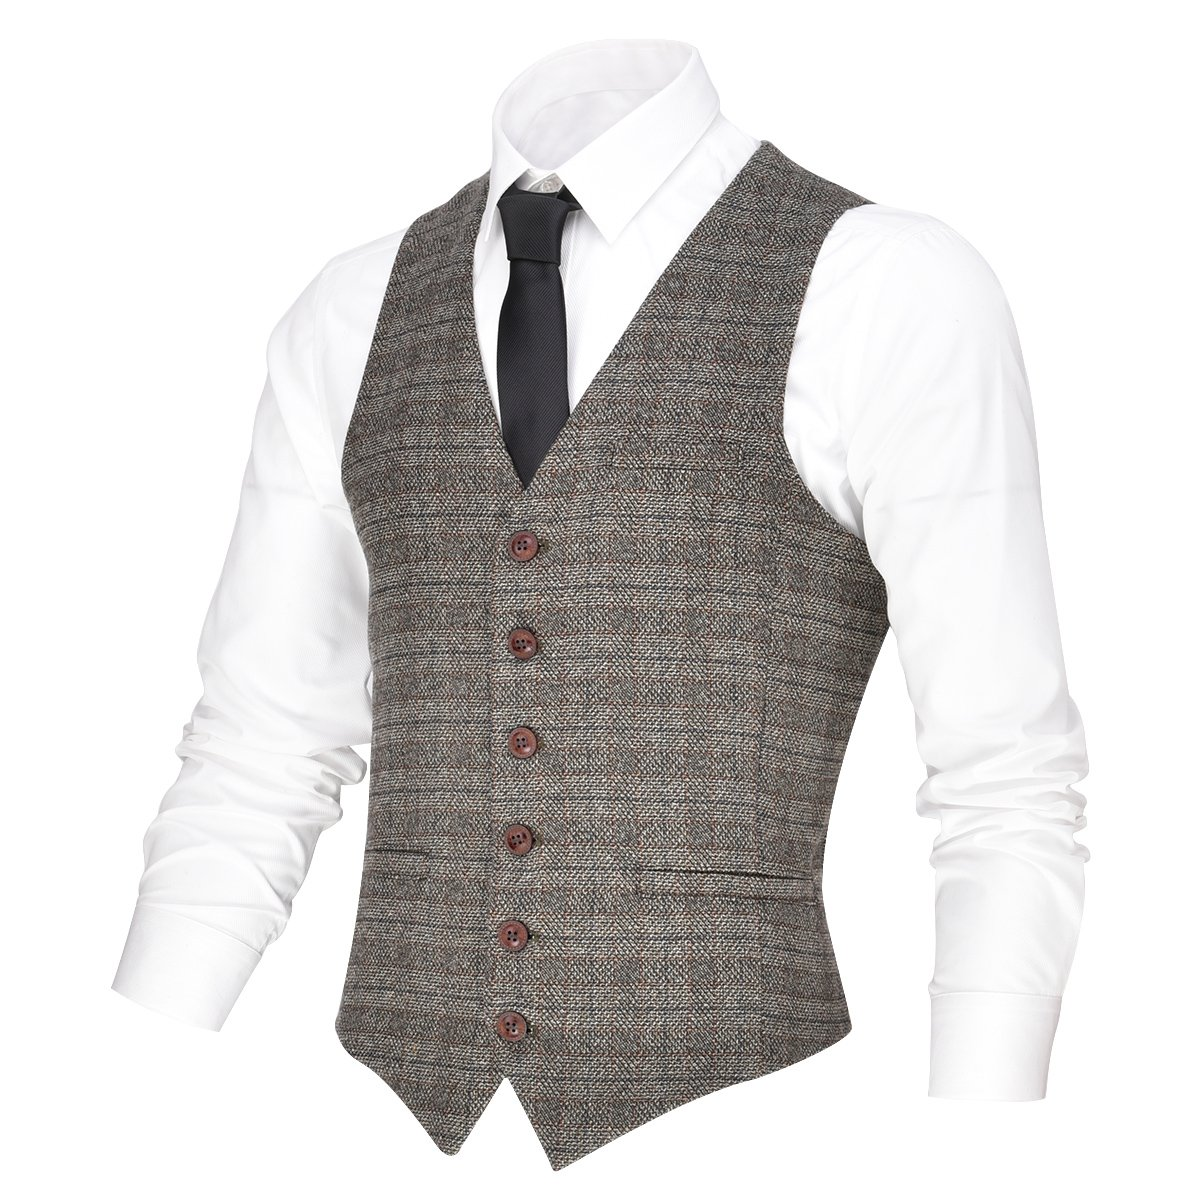 VOBOOM Men's V-Neck Suit Vest Casual Slim Fit Dress 6 Button Vest Waistcoat